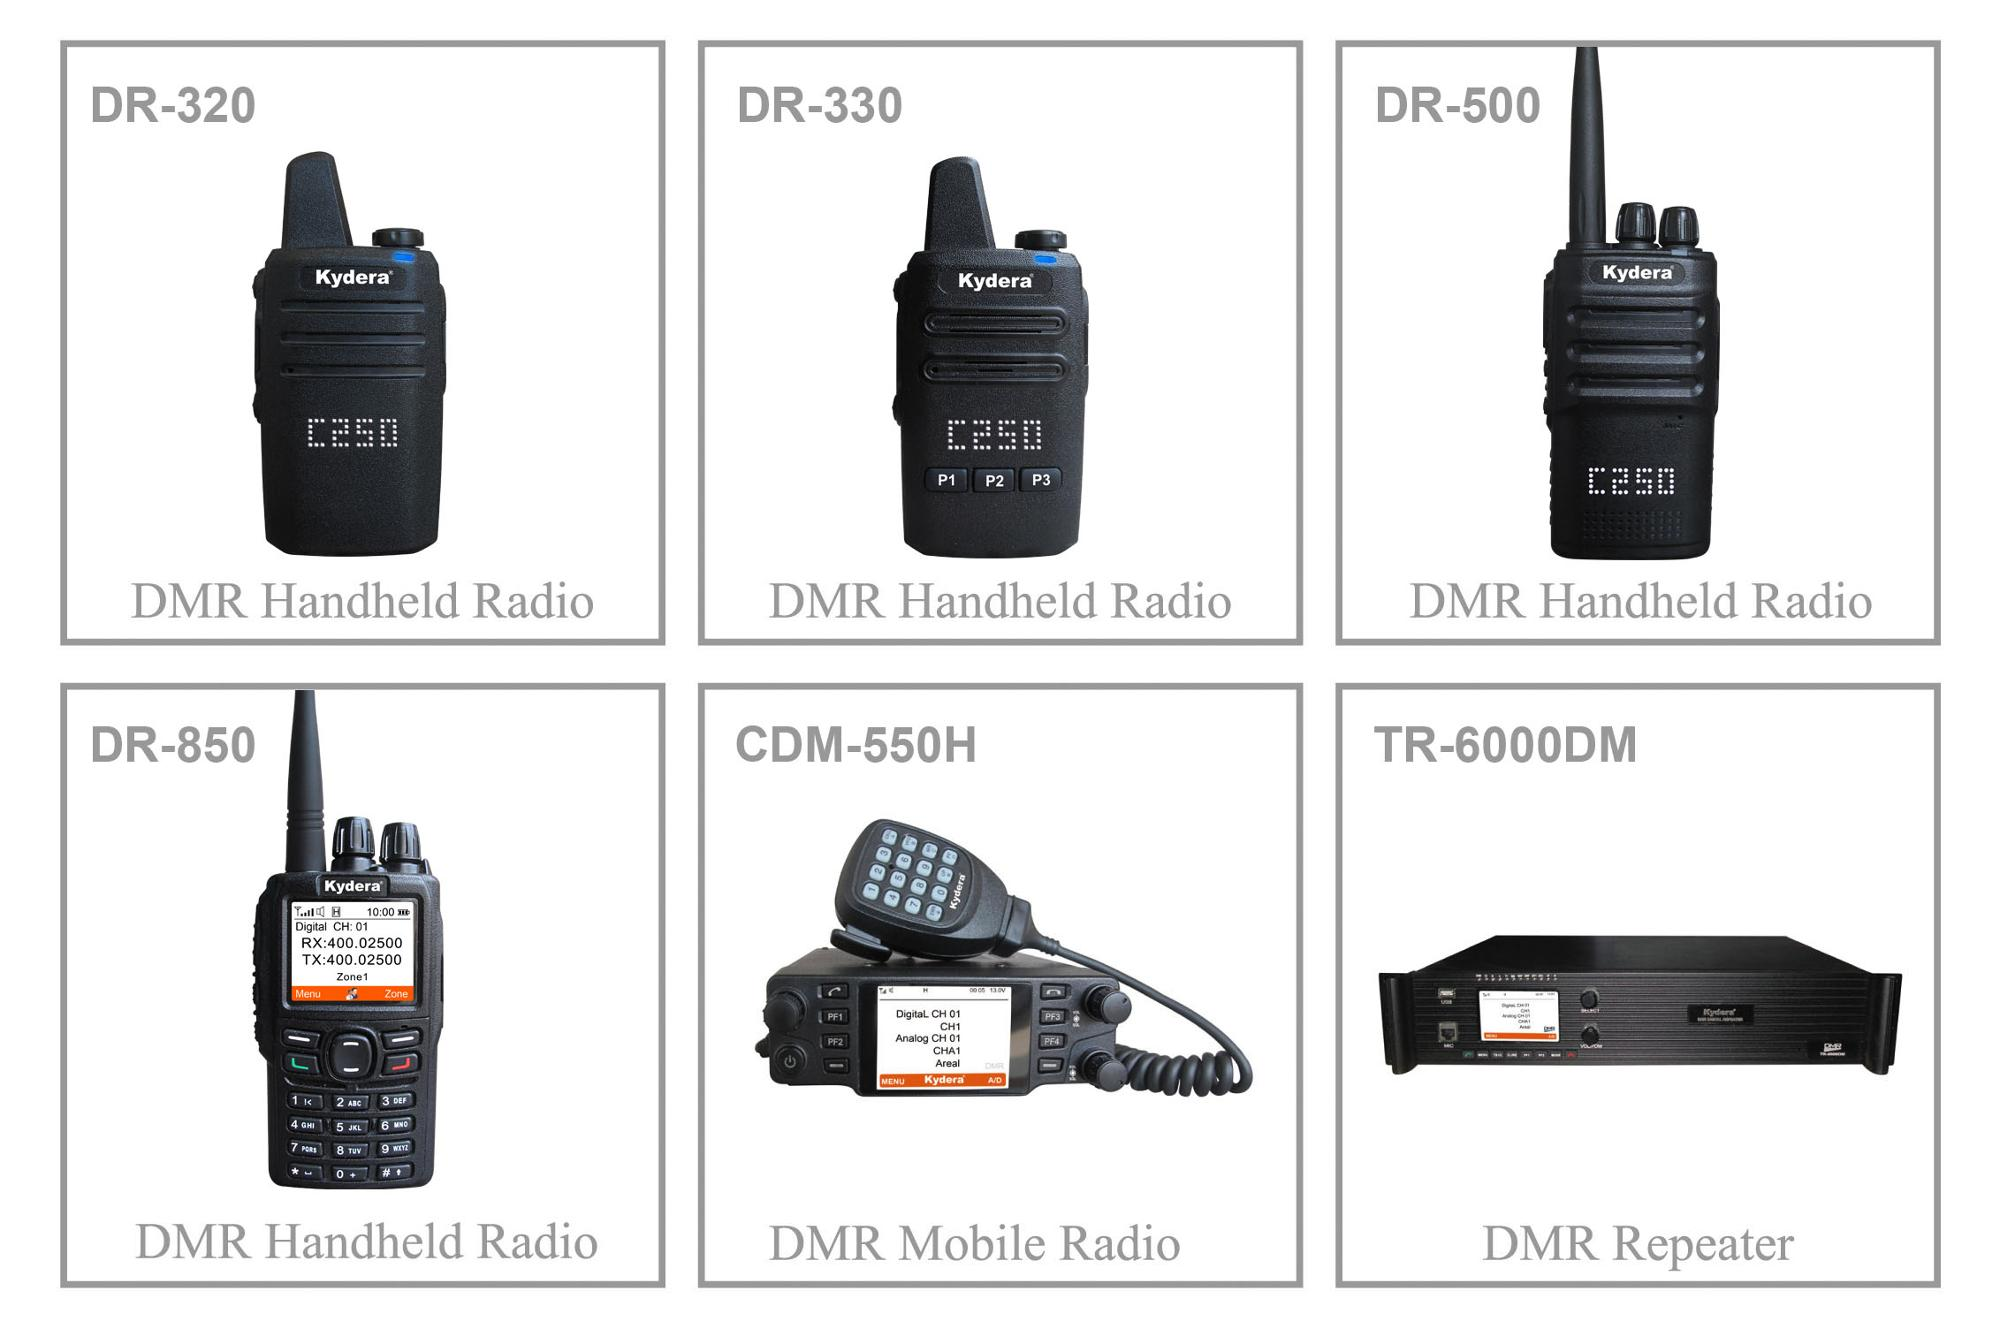 Longue distance autoradio talkie-walkie CDM-550H tdma numérique mobile radio